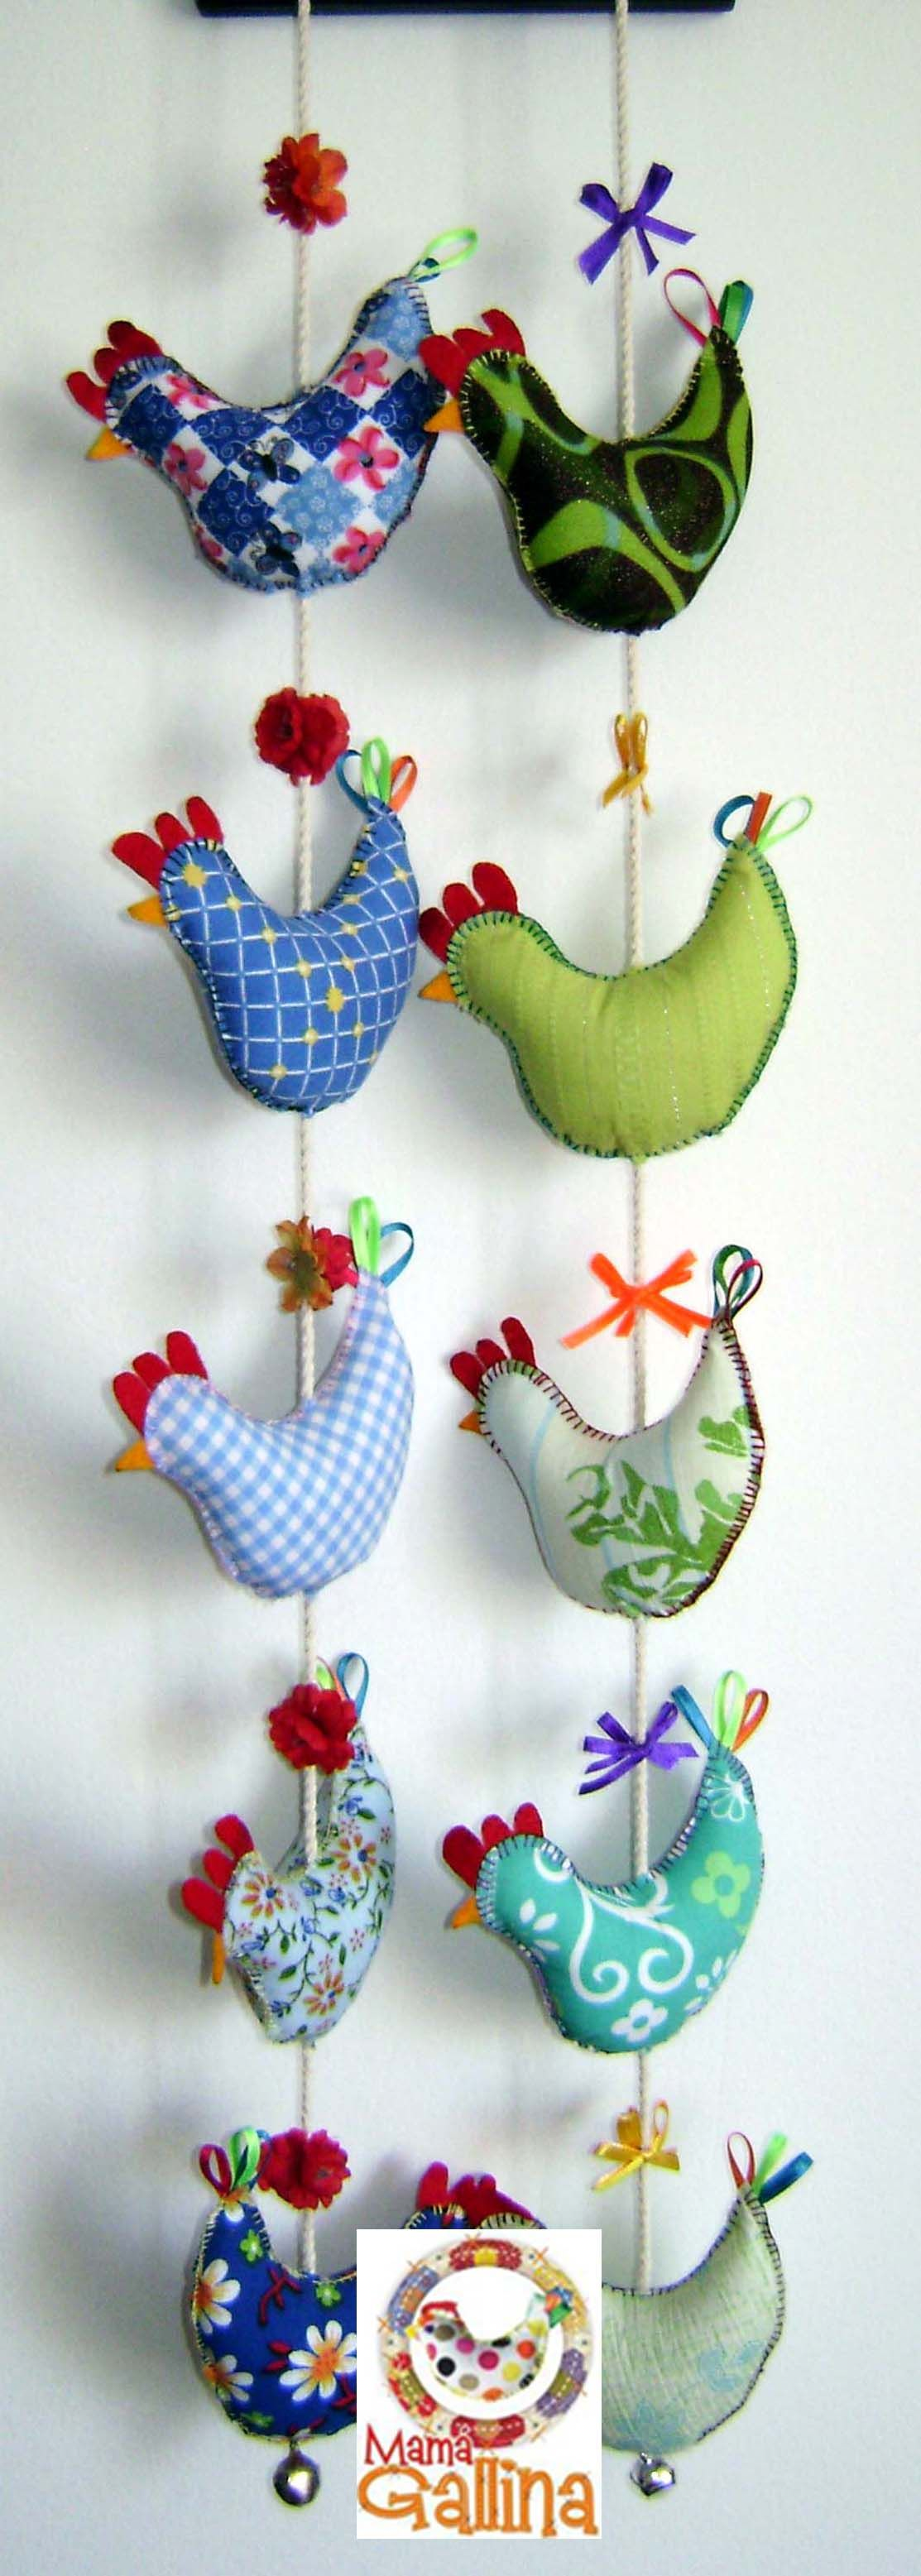 chicken wall hanging projects to try pinterest n hen ostern und basteln. Black Bedroom Furniture Sets. Home Design Ideas